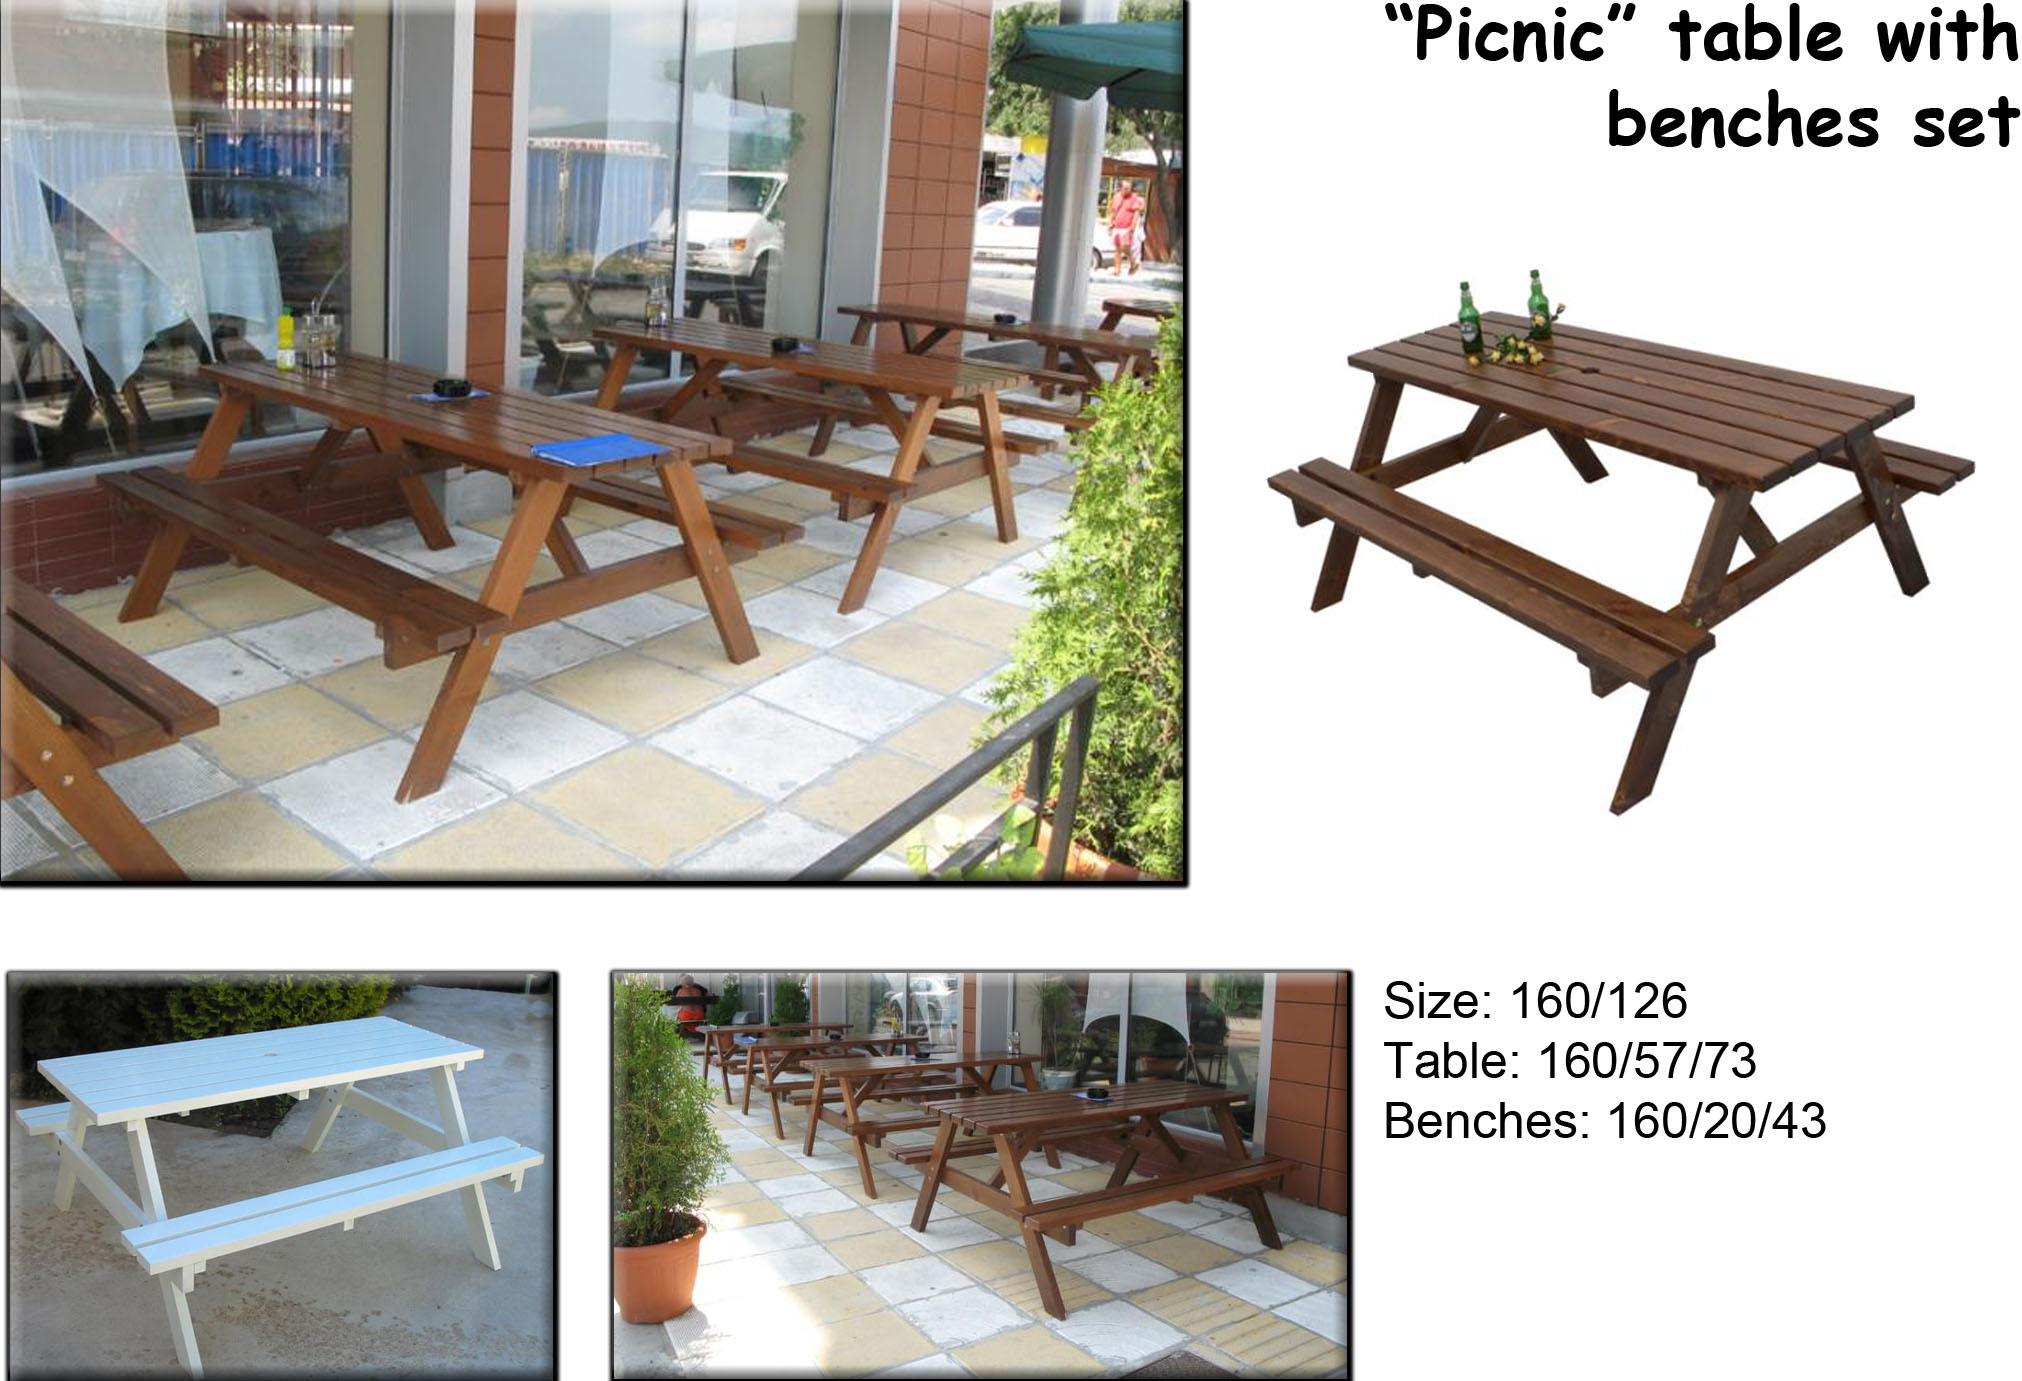 Table With Benches Set Picnic